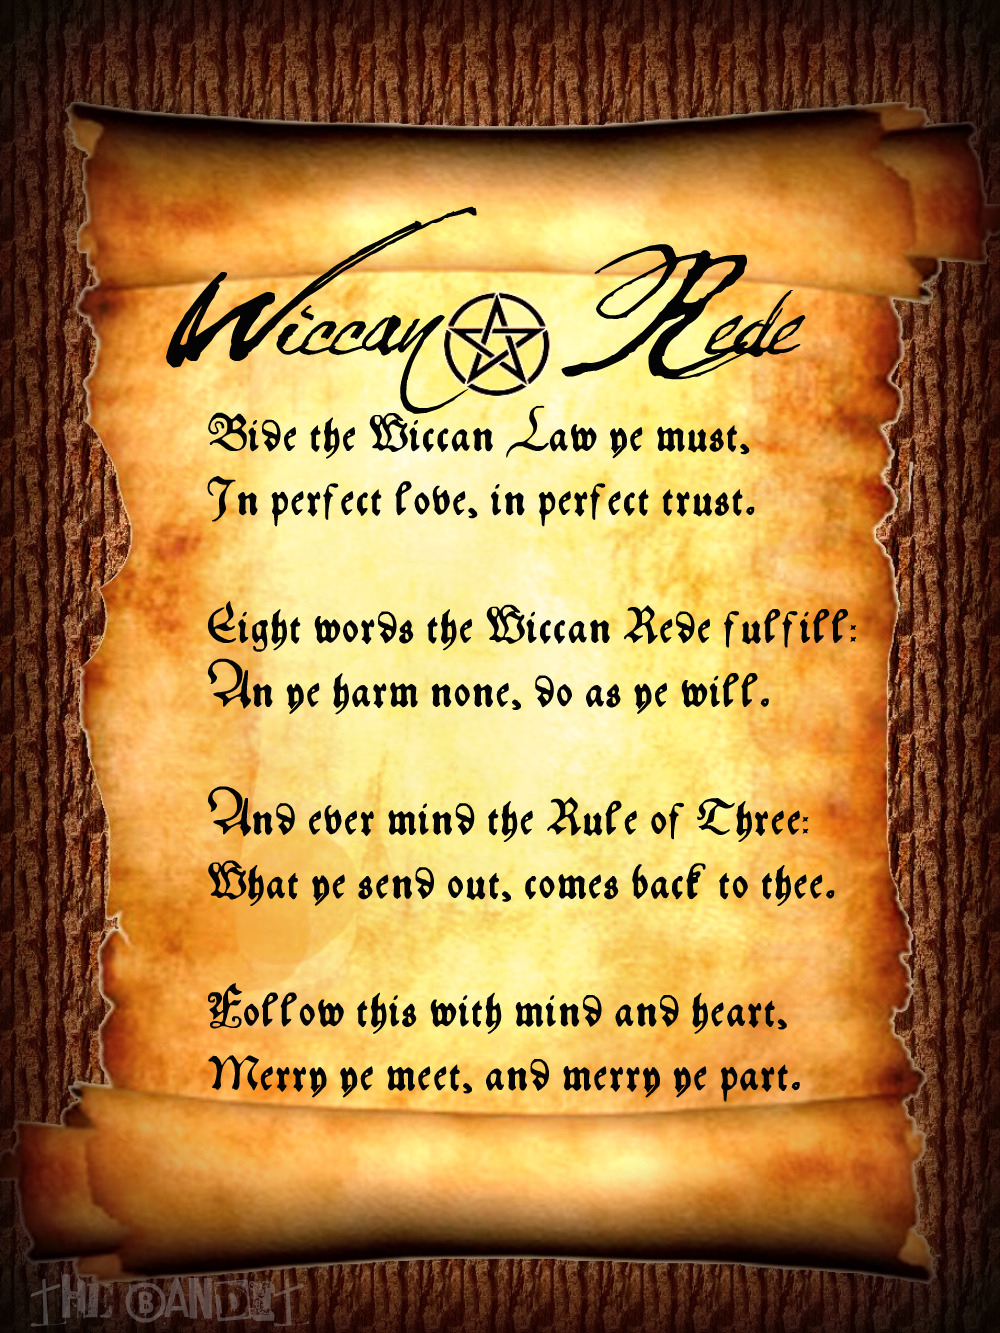 Wallpaper Wiccan Rede 1000x1333